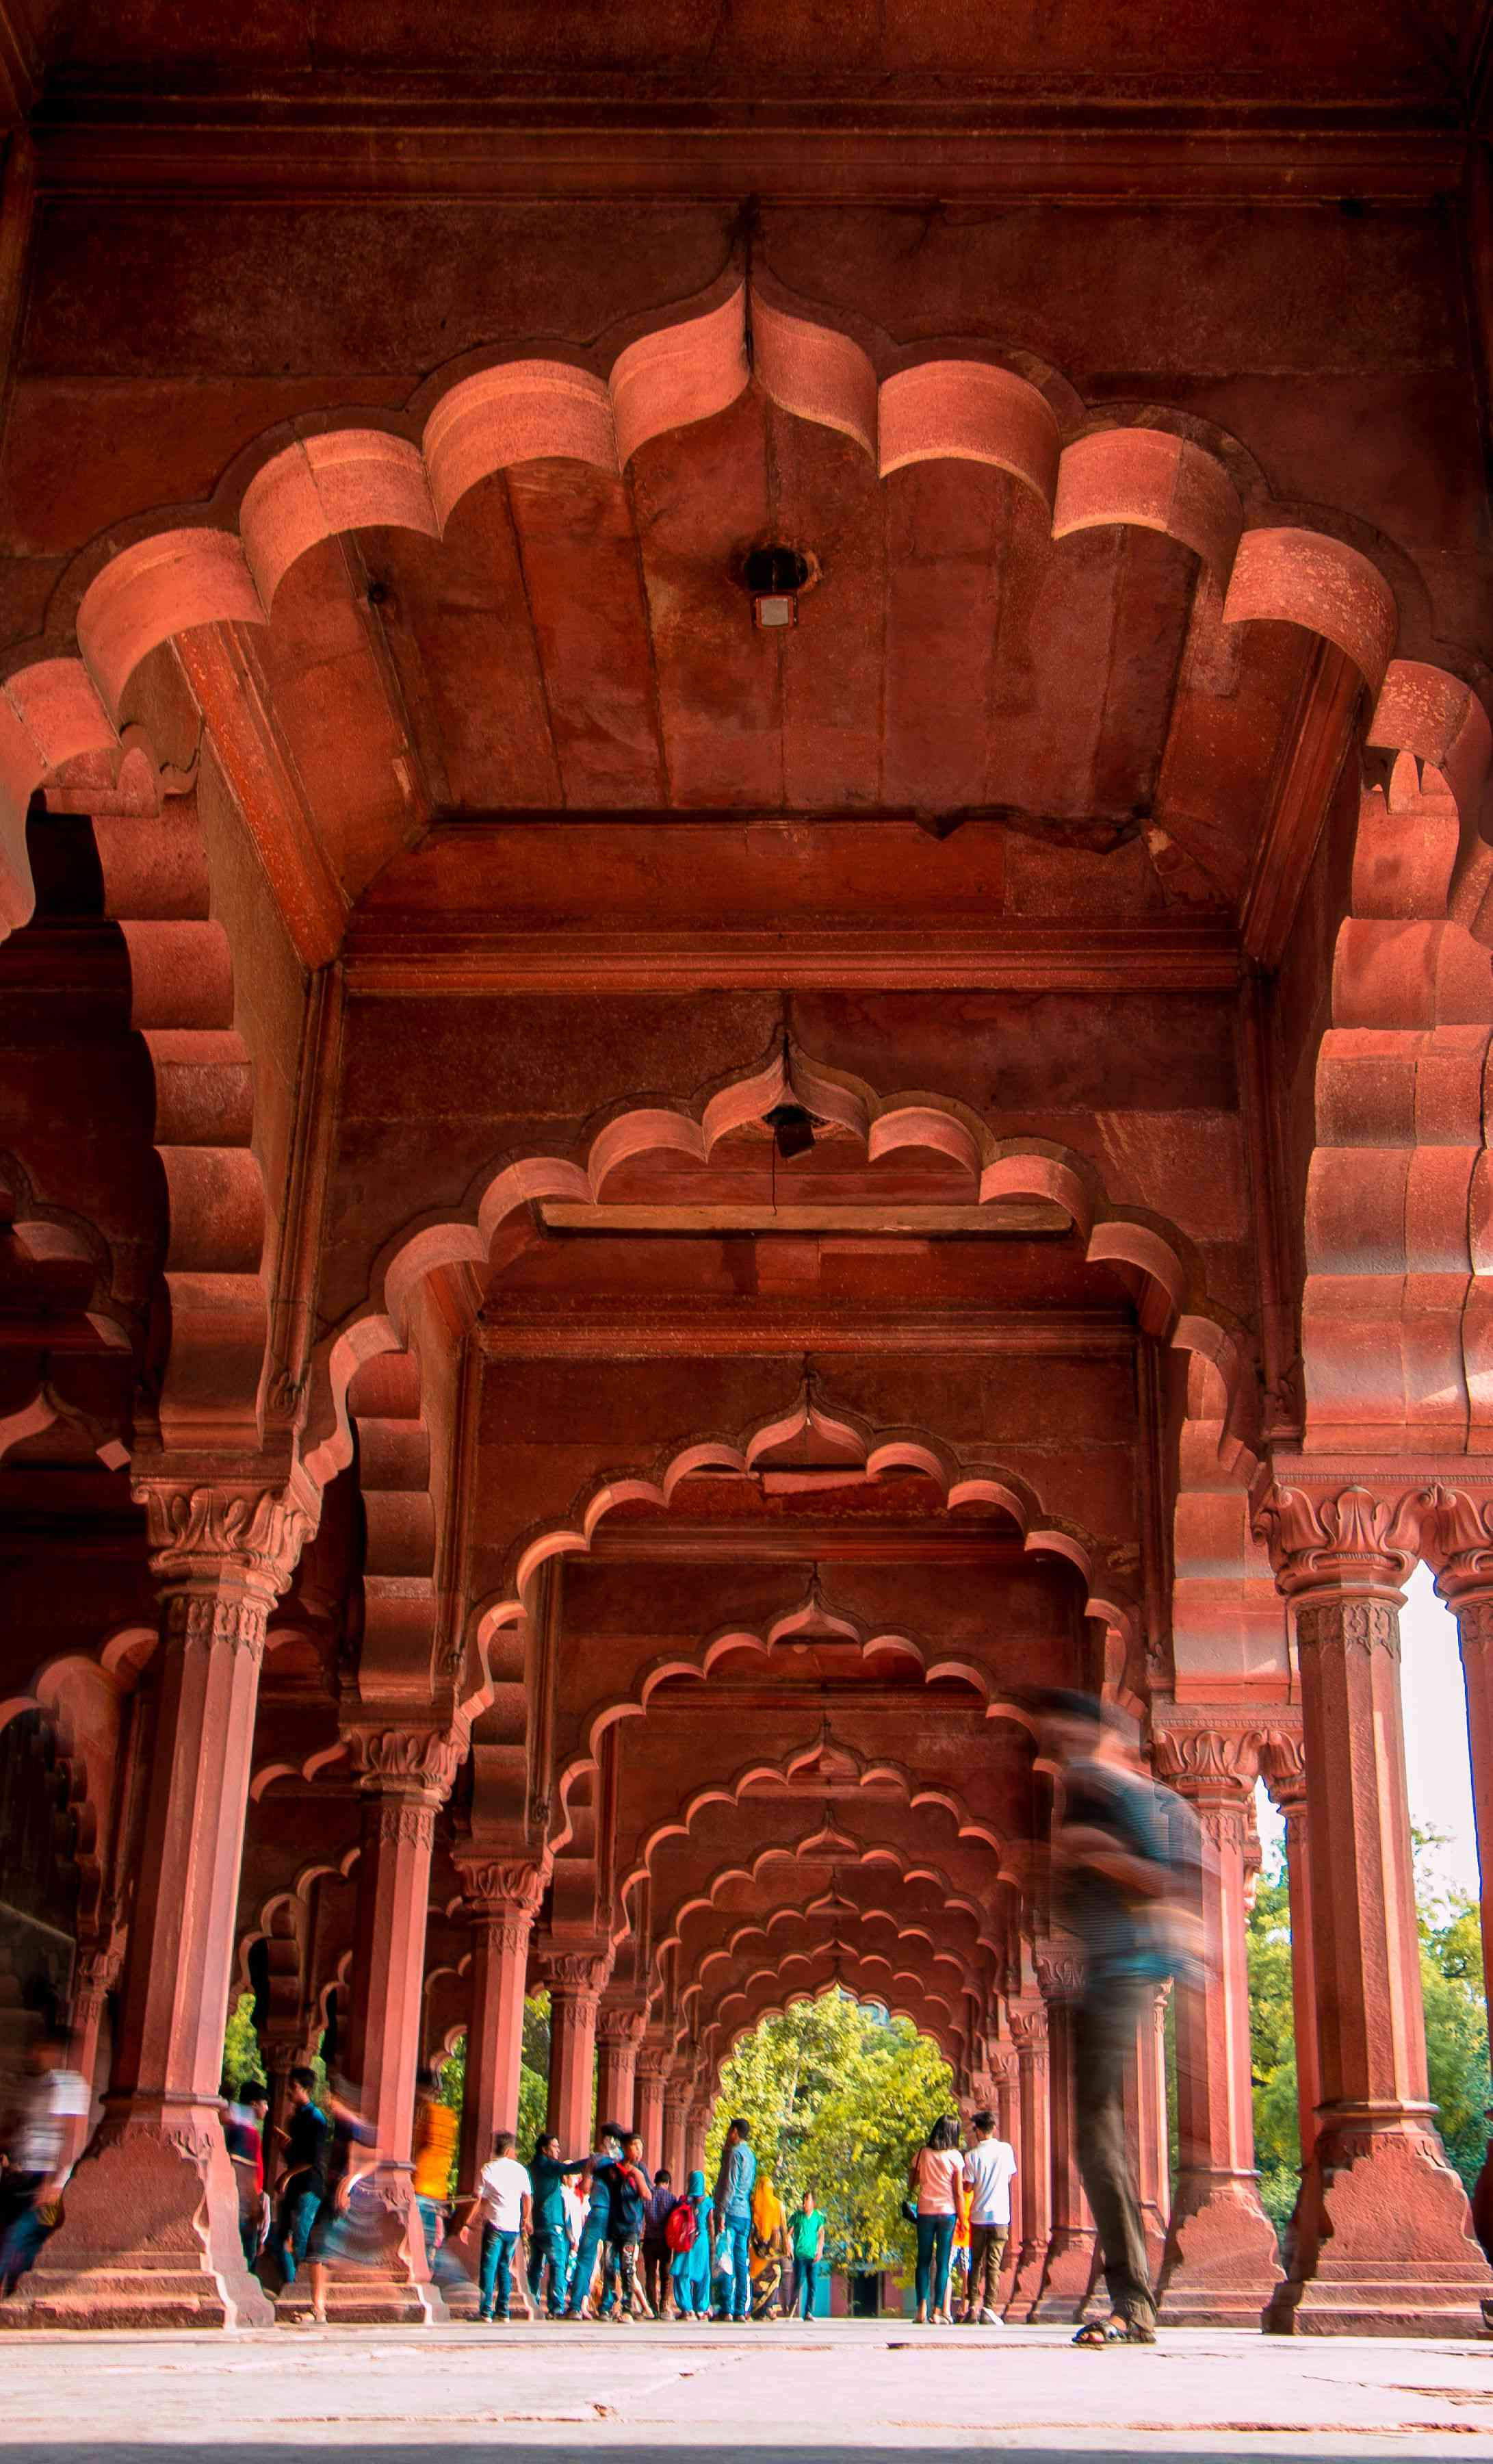 The arches of the Red Fort